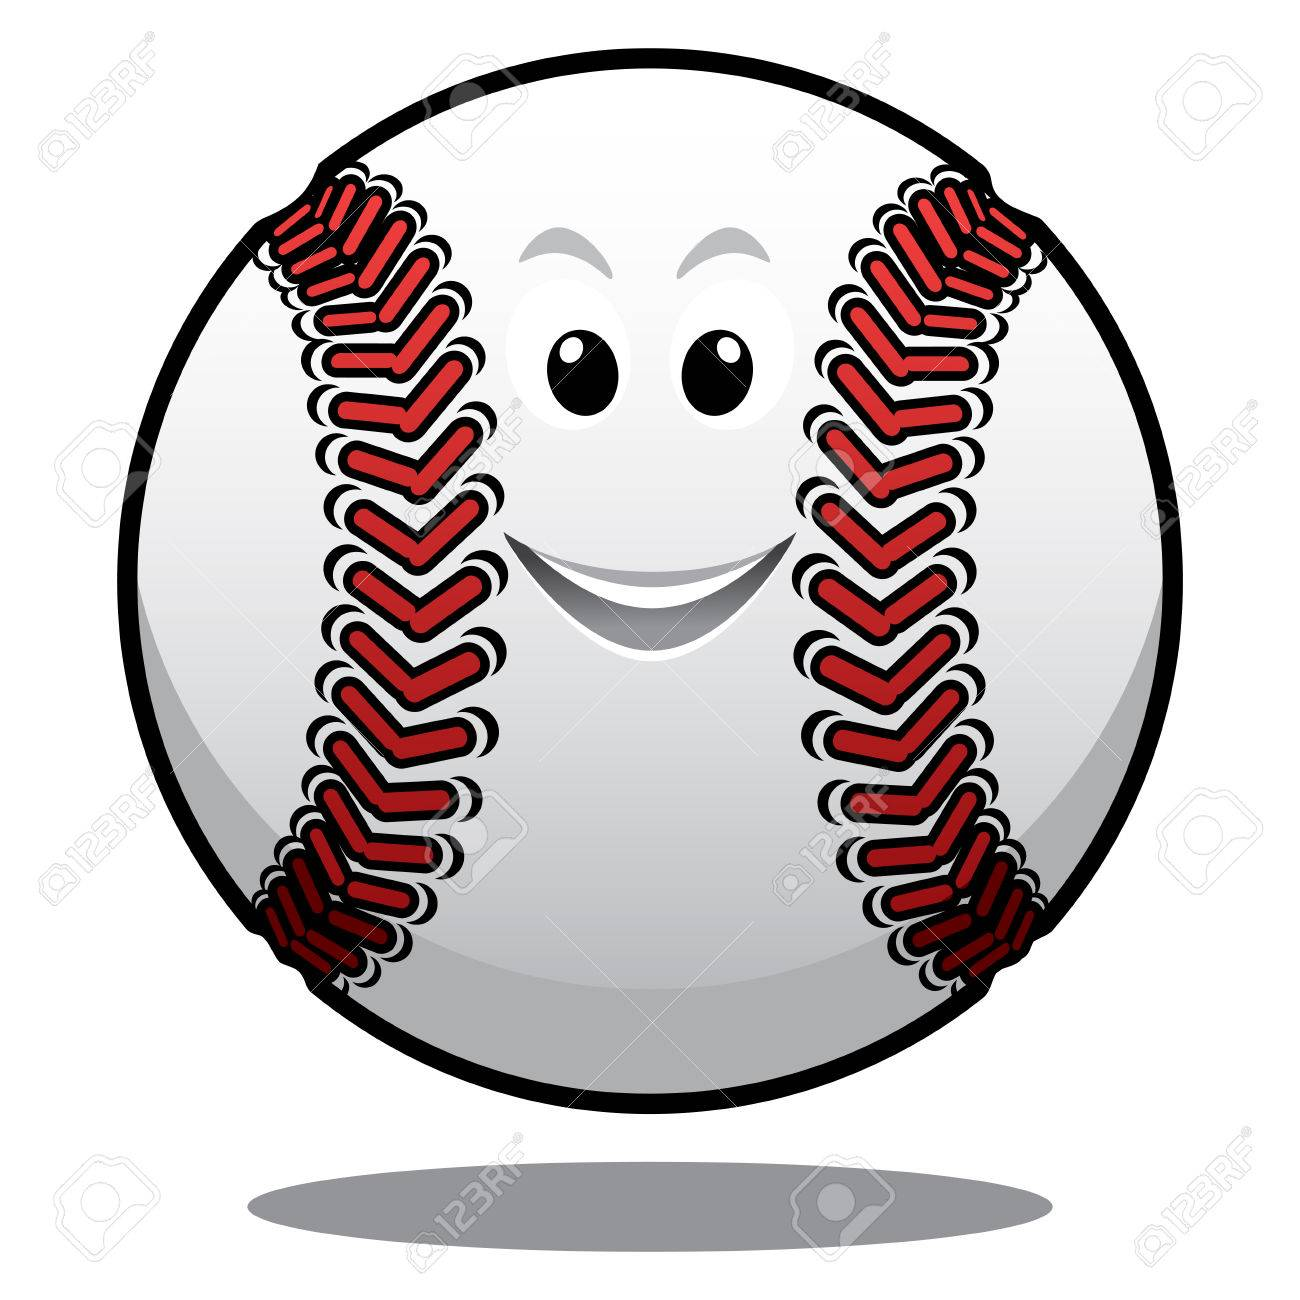 happy white baseball ball with red stitching and a smiling face